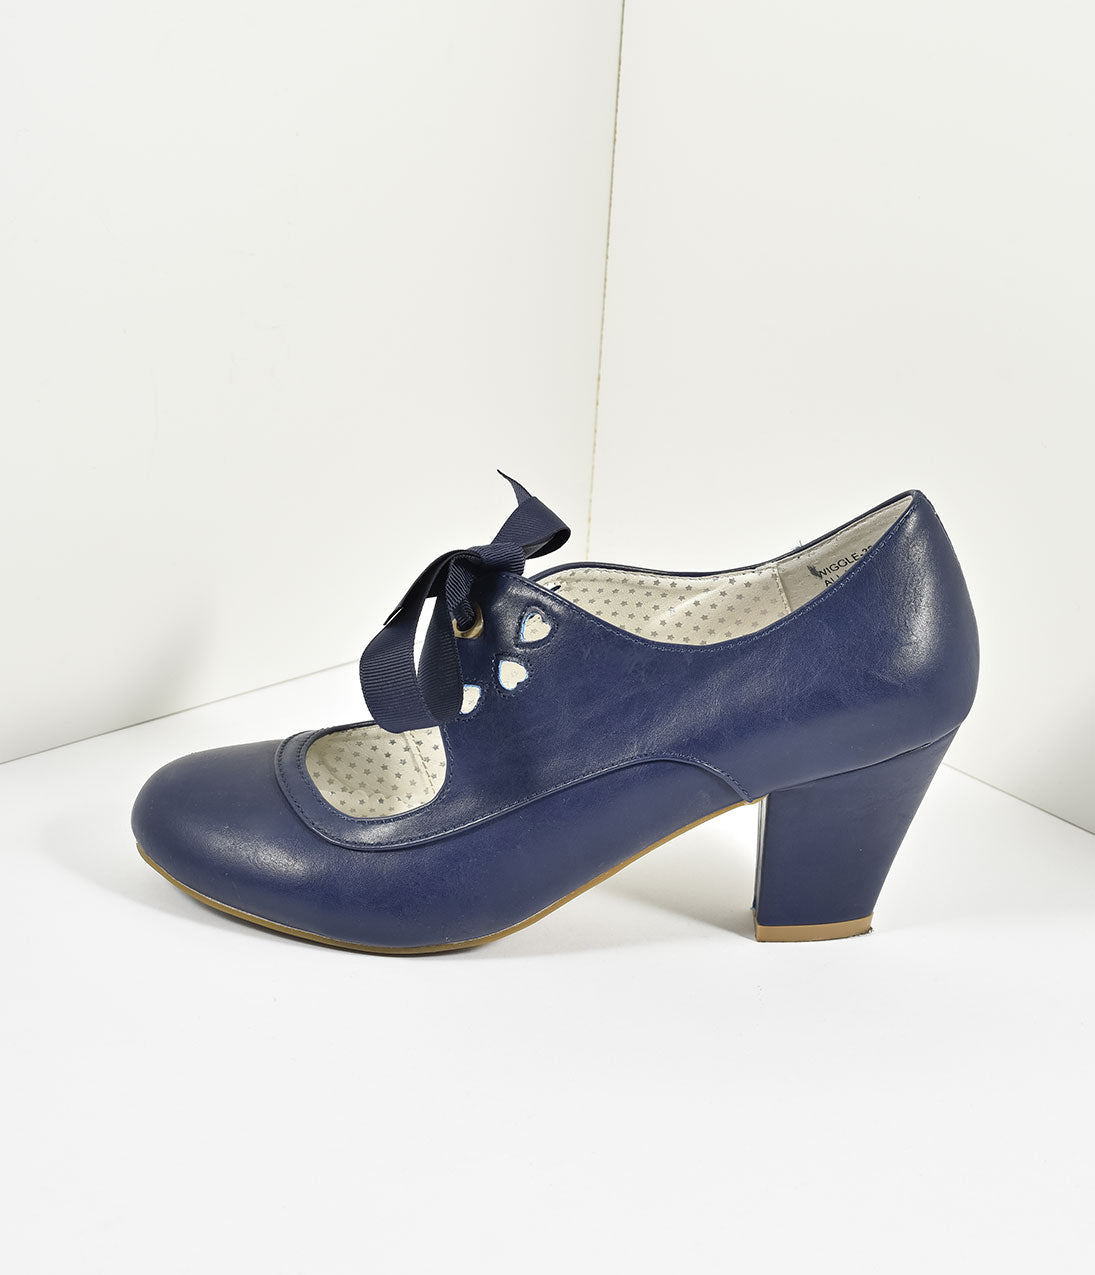 10 Popular 1940s Shoes Styles for Women Vintage Style Navy Blue Leatherette Mary Jane Bow Wiggle Heels $58.00 AT vintagedancer.com